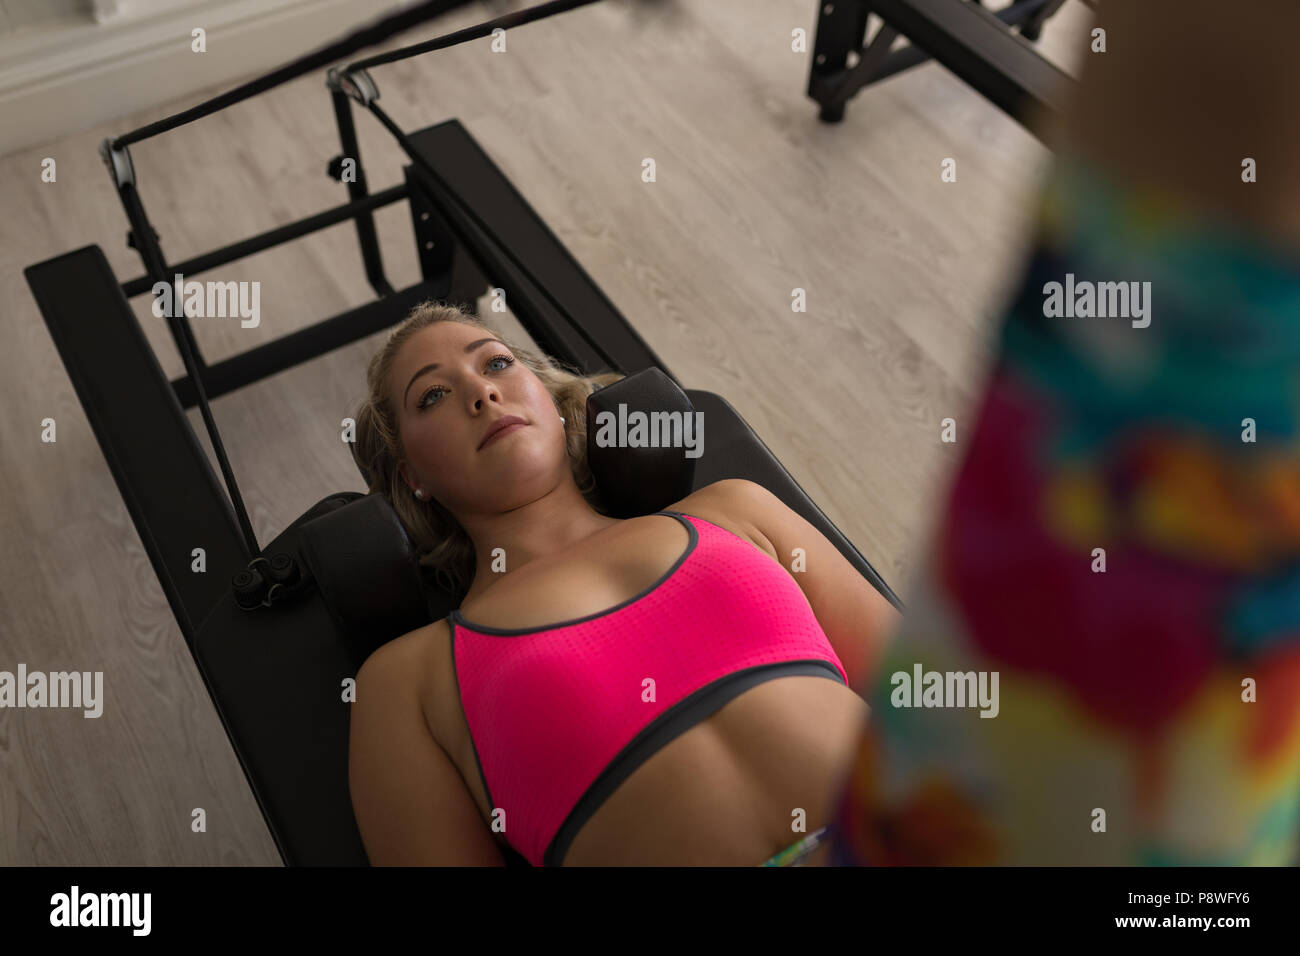 Woman exercising on stretching machine - Stock Image